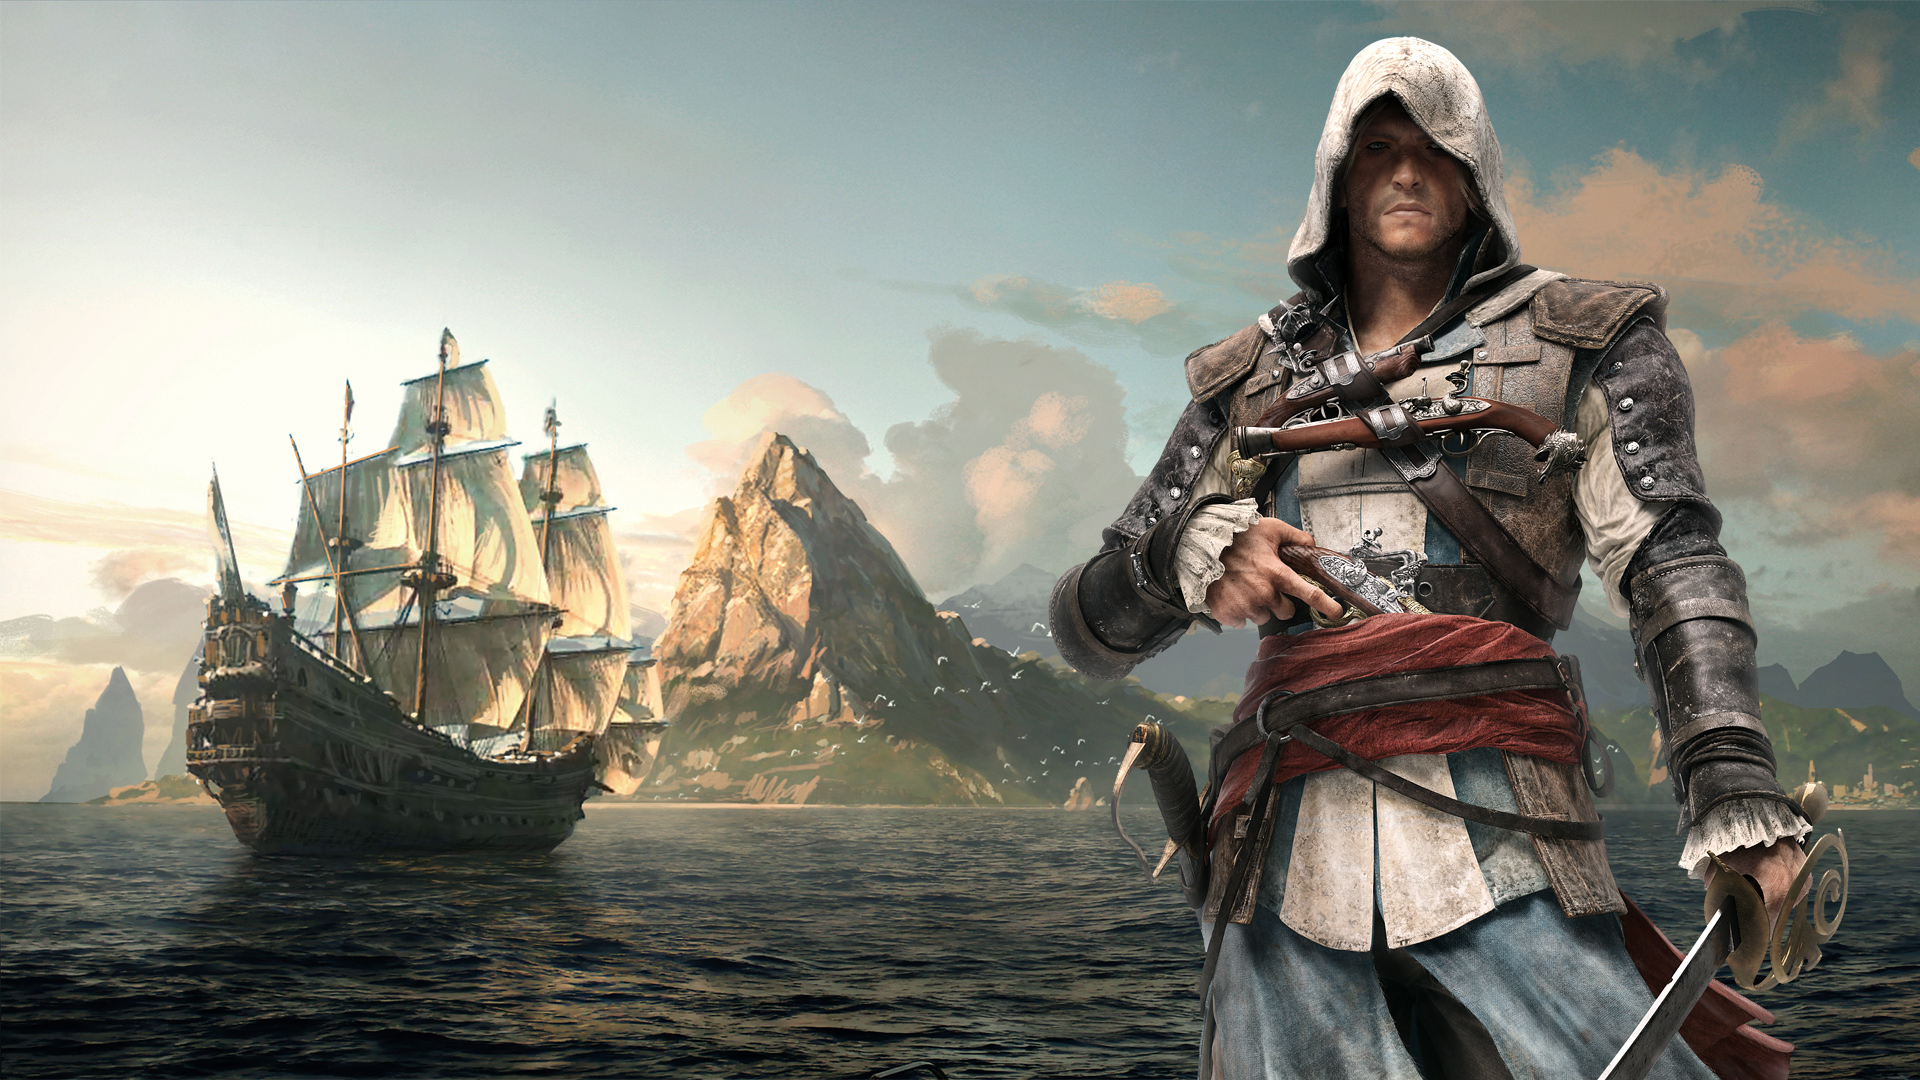 Assassins creed iv black flag full hd wallpaper and background video game assassins creed iv black flag wallpaper voltagebd Image collections